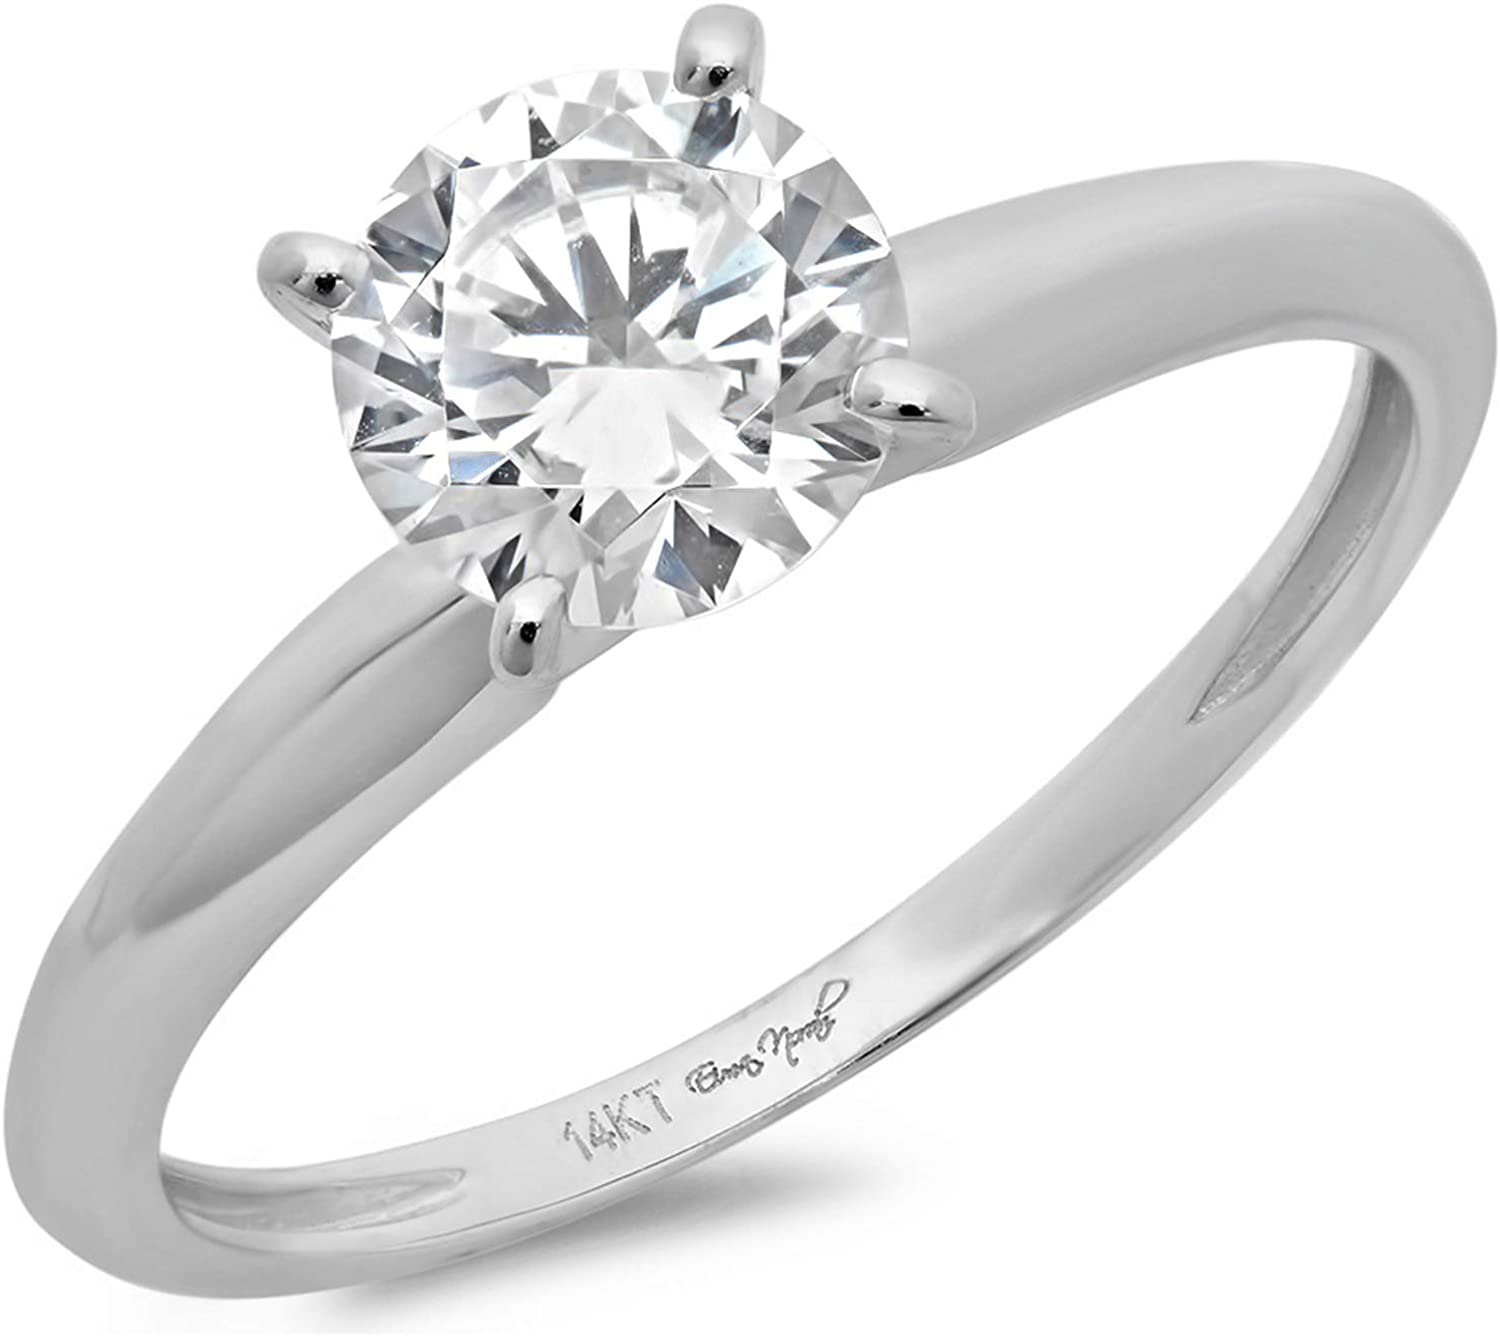 14k White Gold 1.47cttw Classic Round Cut Solitaire Moissanite Engagement Promise Ring Statement Anniversary Bridal Wedding by Clara Pucci